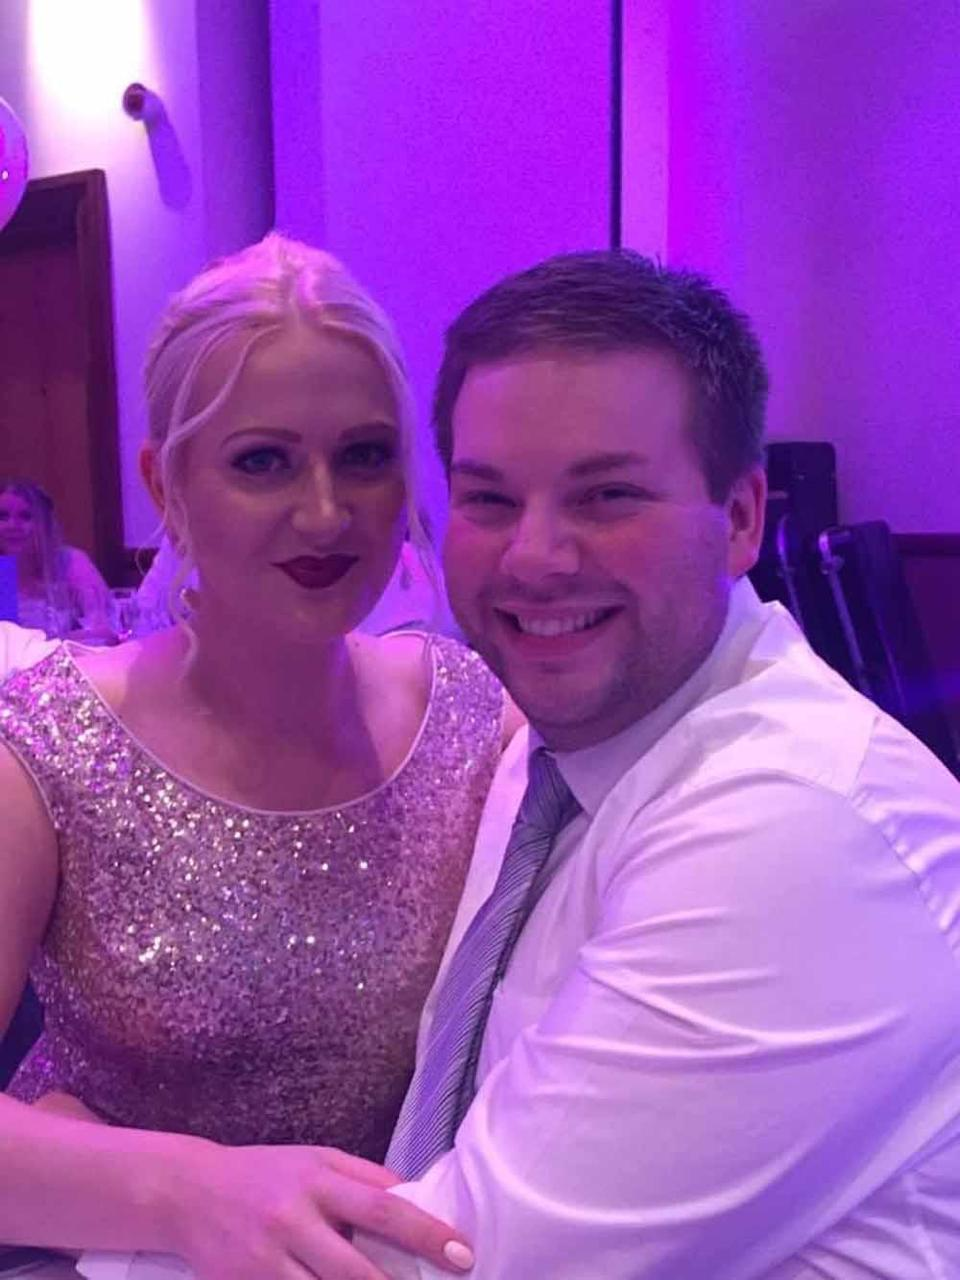 Rhys with a friend at an awards evening in 2018, prior to his weight loss. PA REAL LIFE